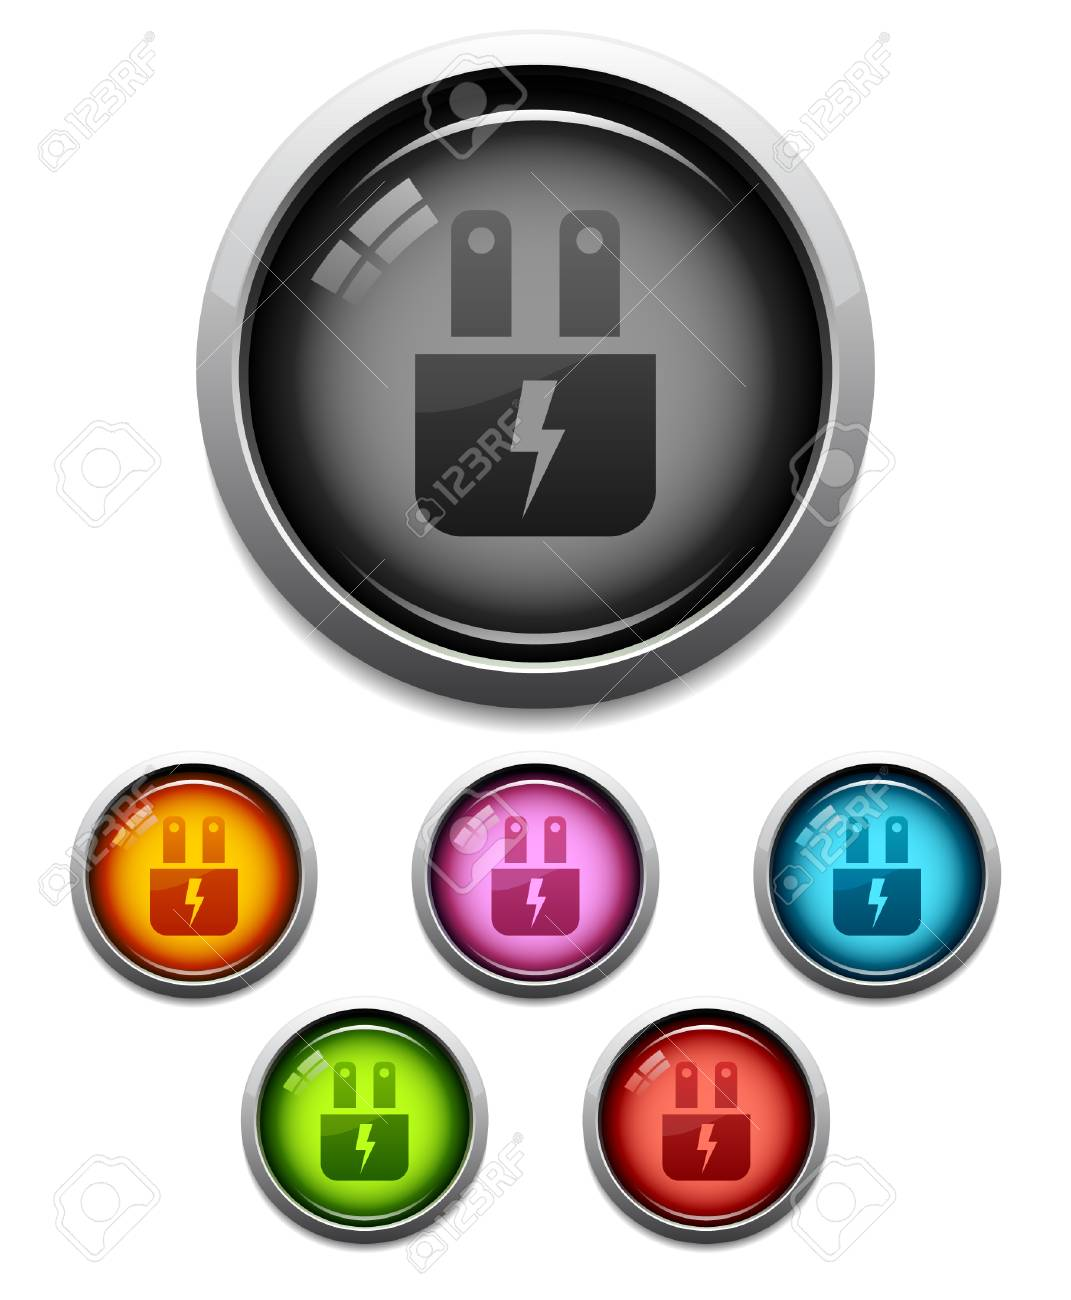 Glossy Electric Plug Button Icon Set In 6 Colors Royalty Free ...